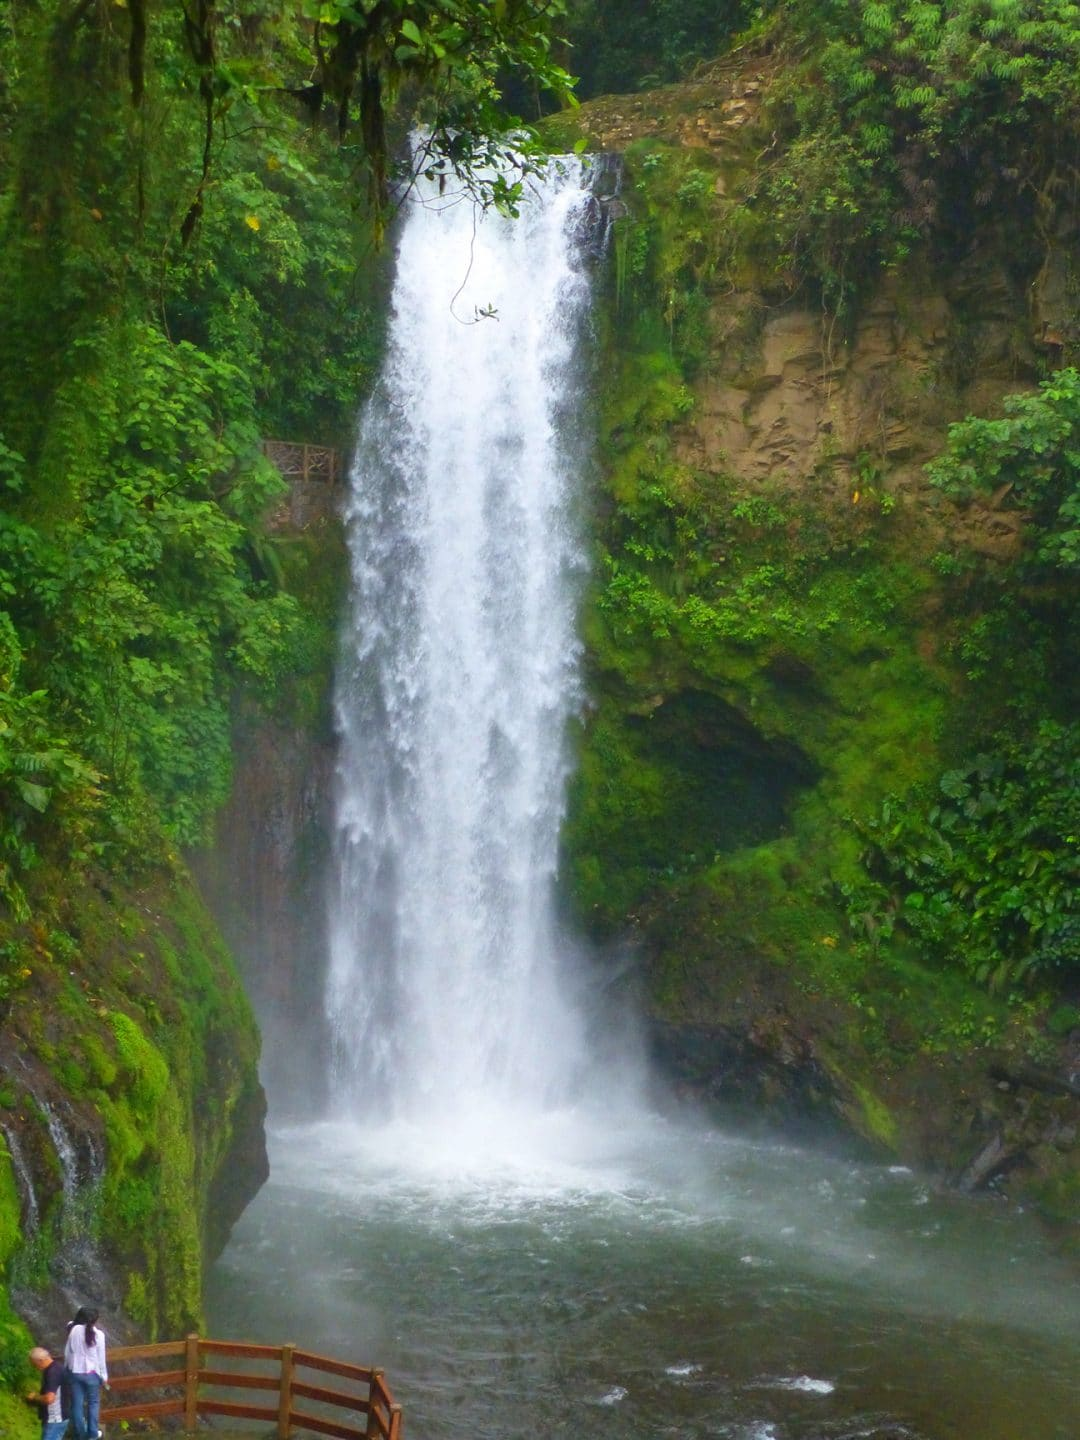 Magia Blanca Waterfall In La Paz Waterfall Gardens Vara Blanca Alajuela Costa Rica Our Best